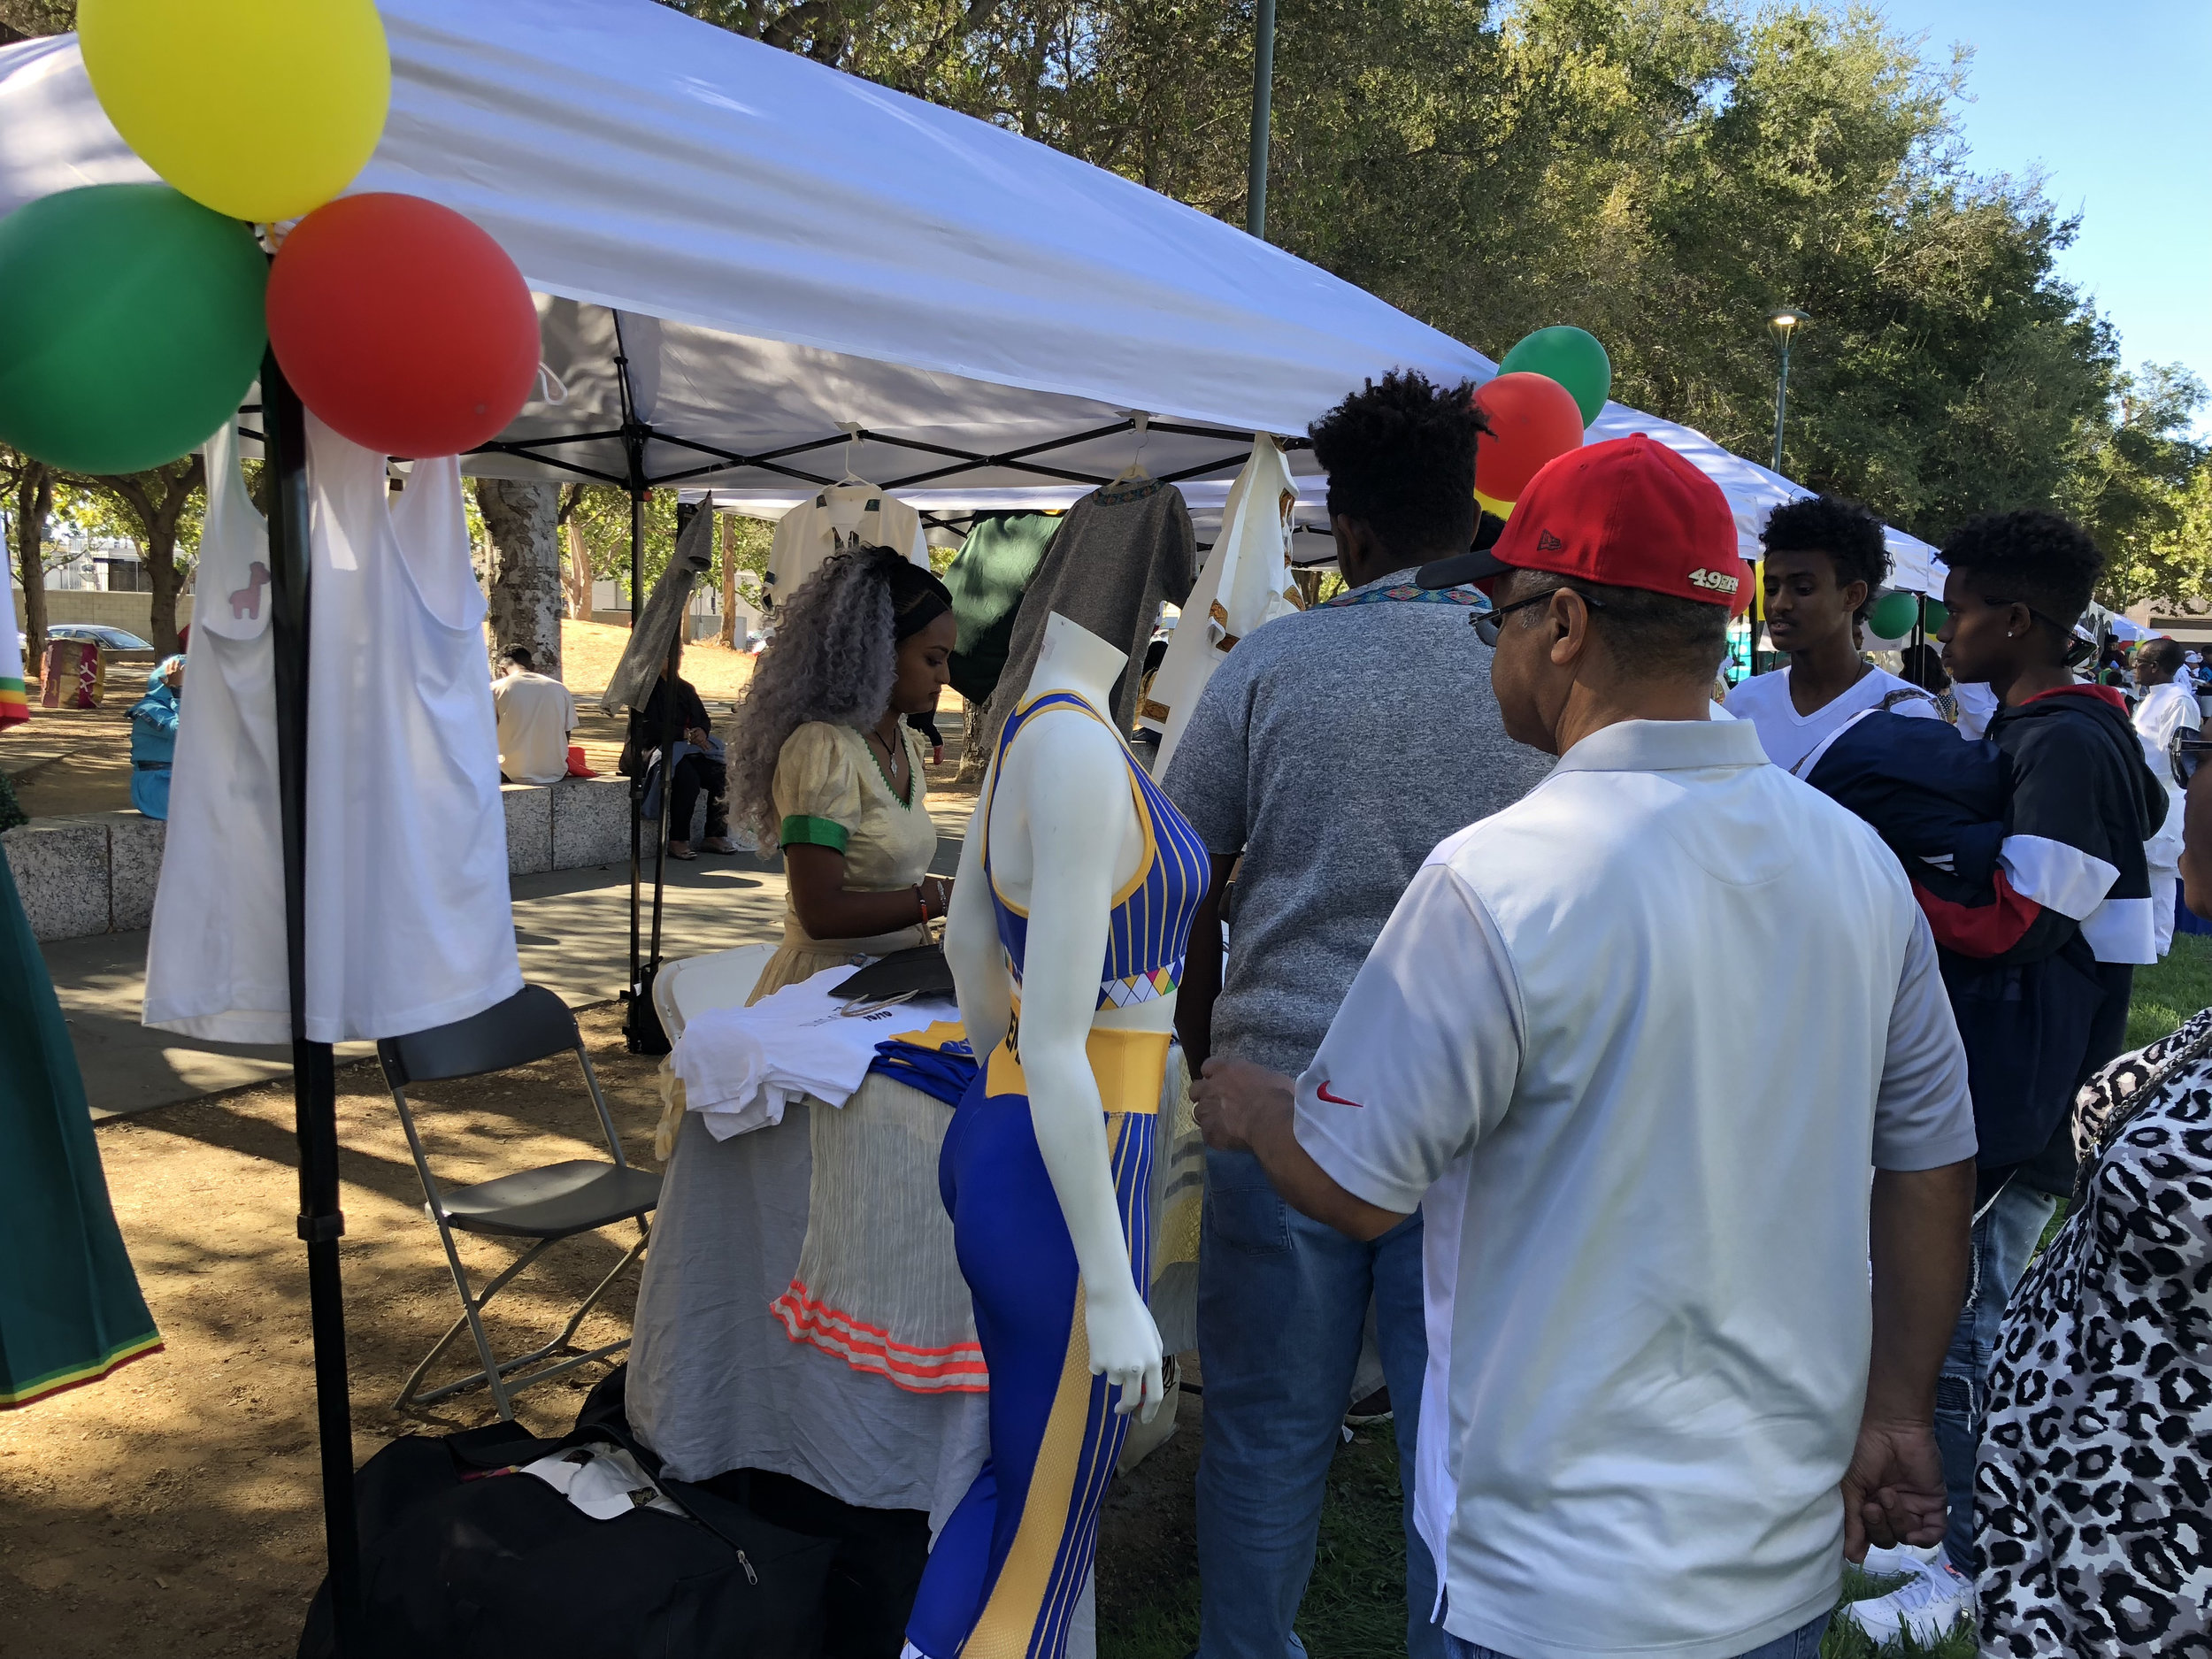 San Jose, California - Interacting with our supporters at the Ethiopia New Year event.